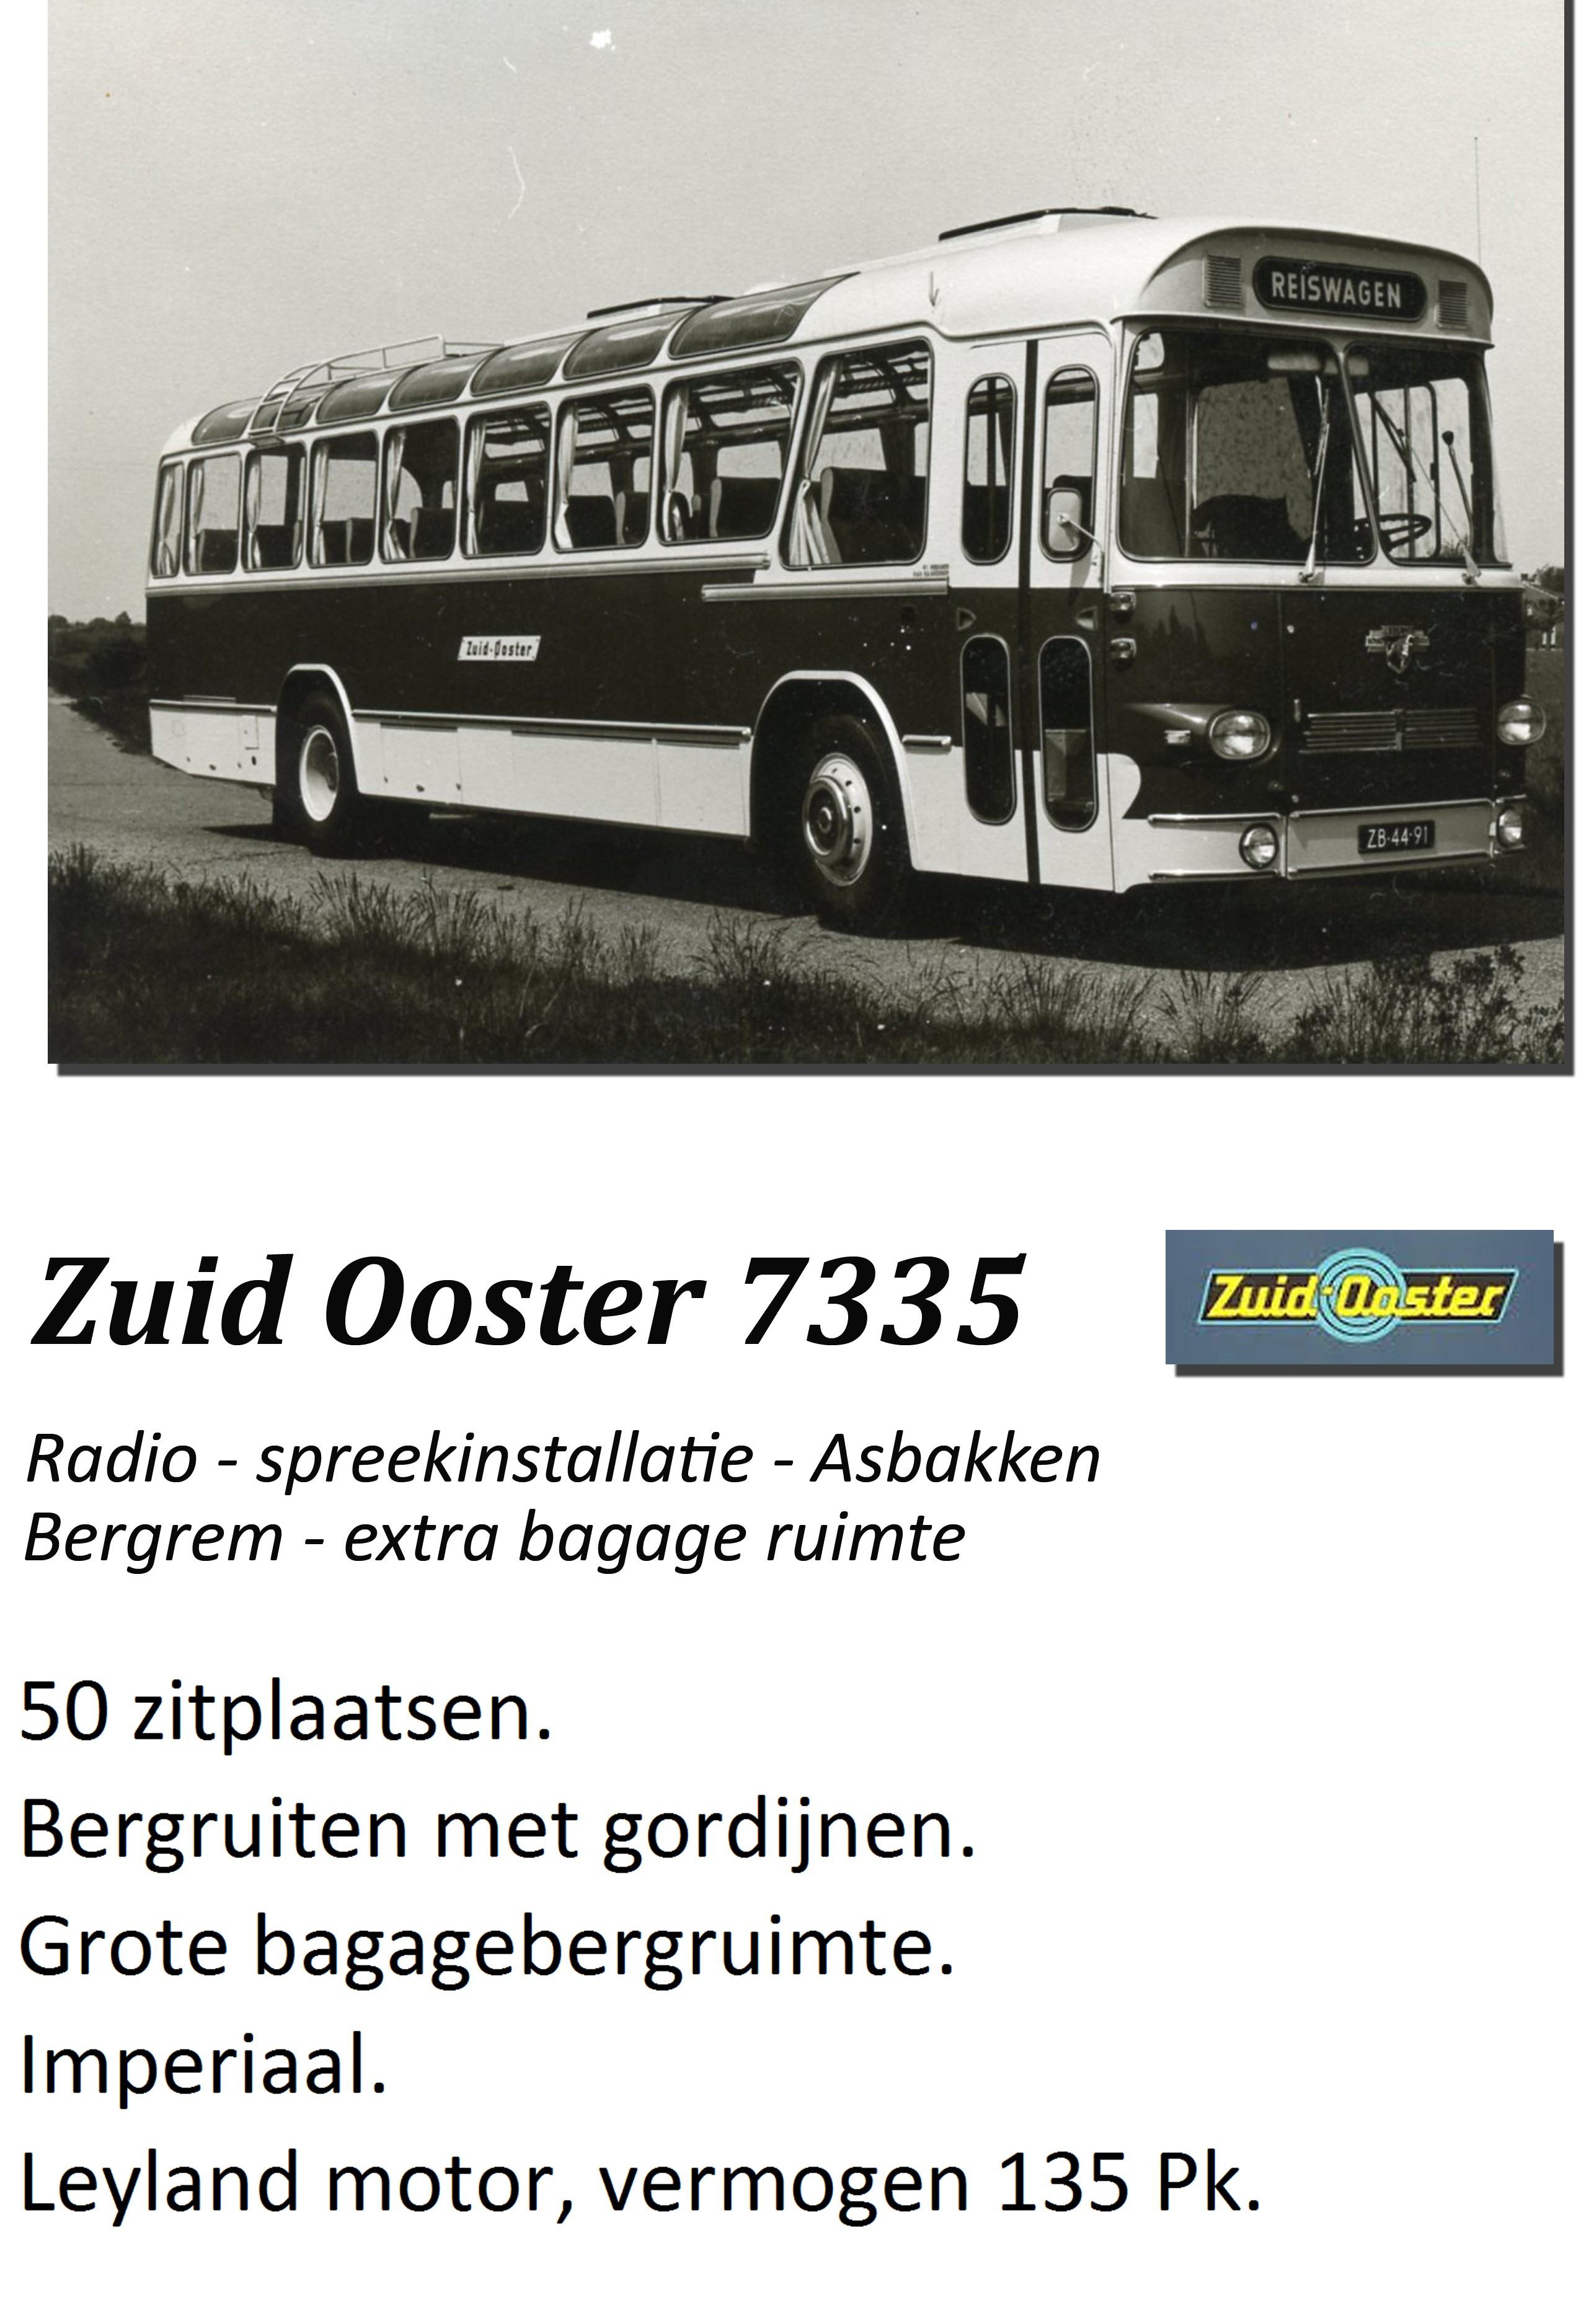 7335-Zuid-Ooster-1